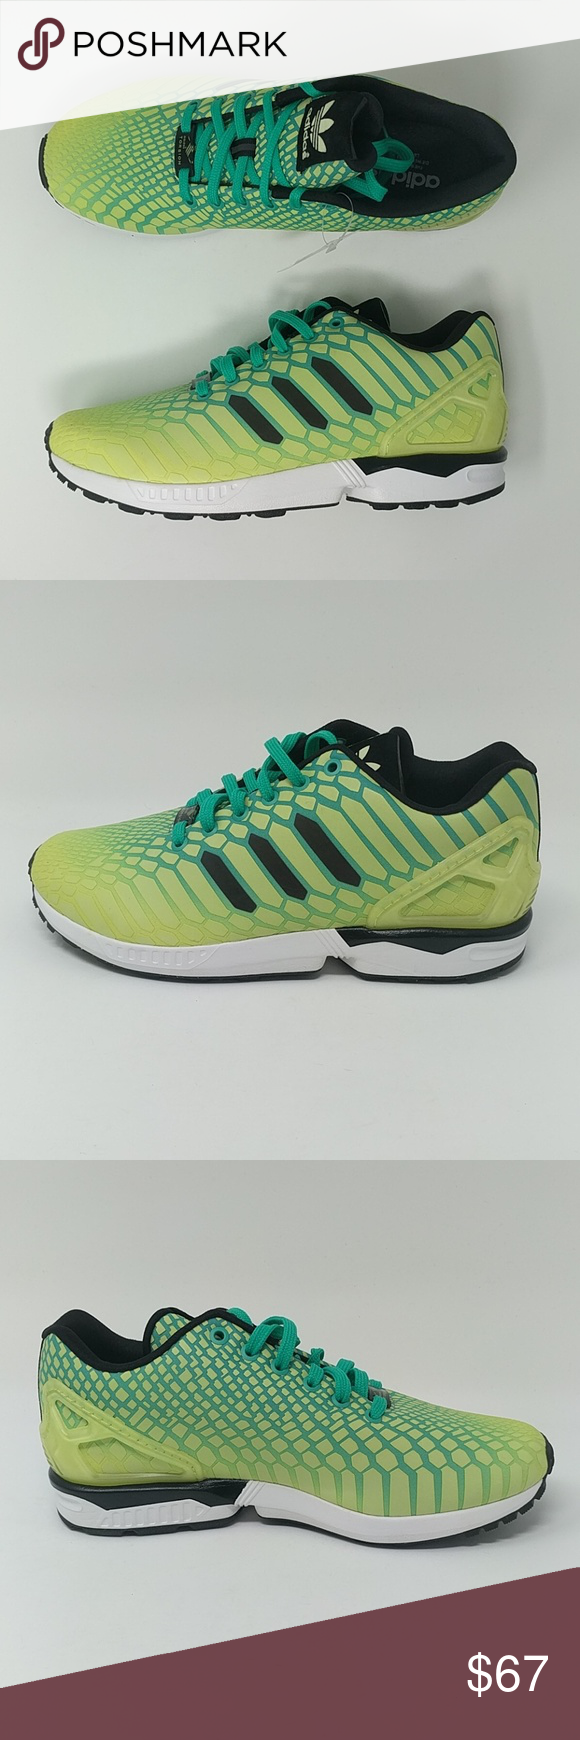 wholesale dealer 02c8e 89efd Adidas ZX Flux Xeno Mens Running Shoes New New with box ...